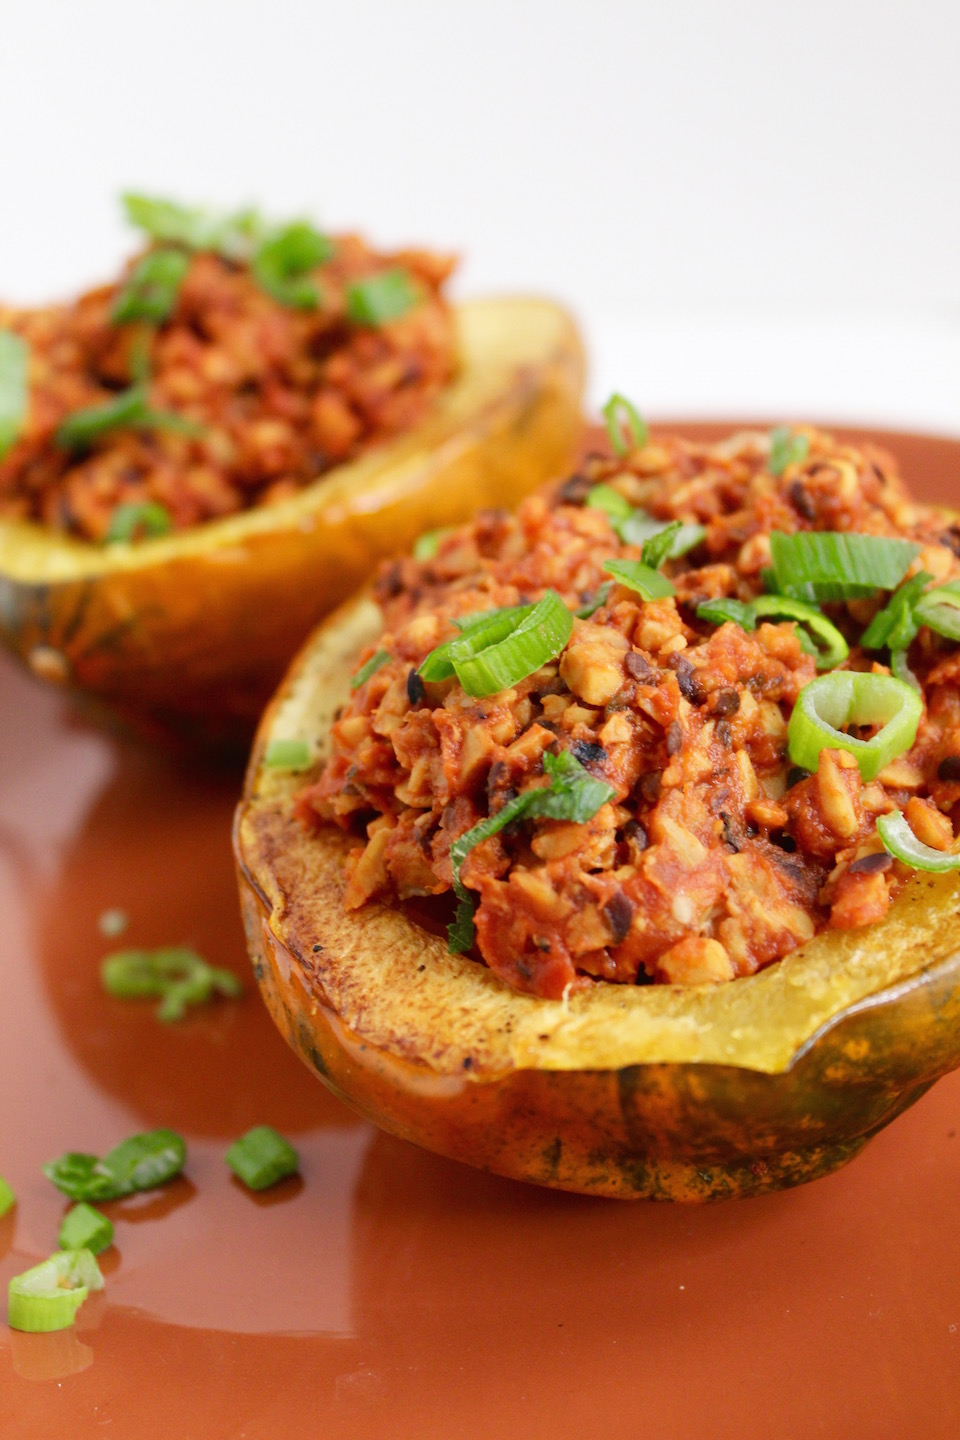 Smoky Tempeh Stuffed Acorn Squash topped with Green Onion